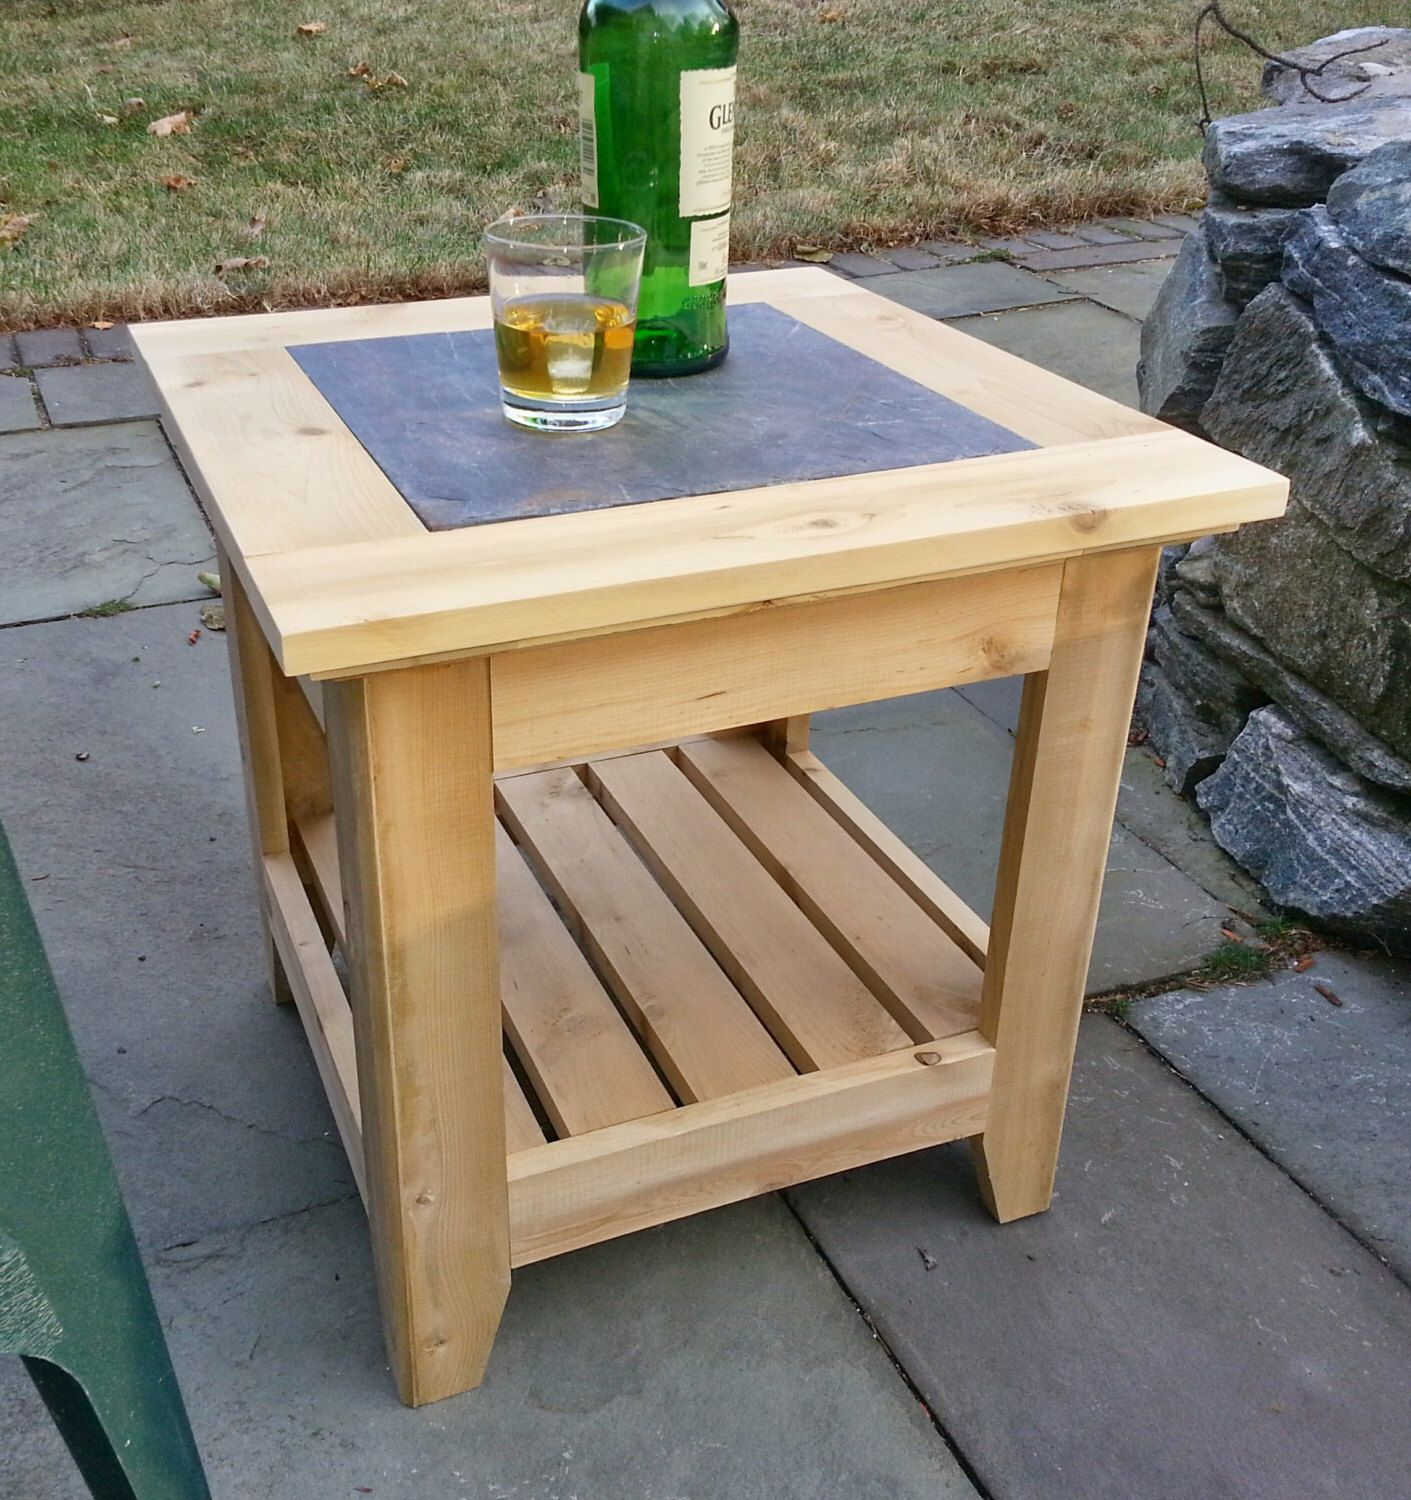 Handmade Cedar Patio Side Table With A Tile Inlay By Reilwoodworks On Etsy Https